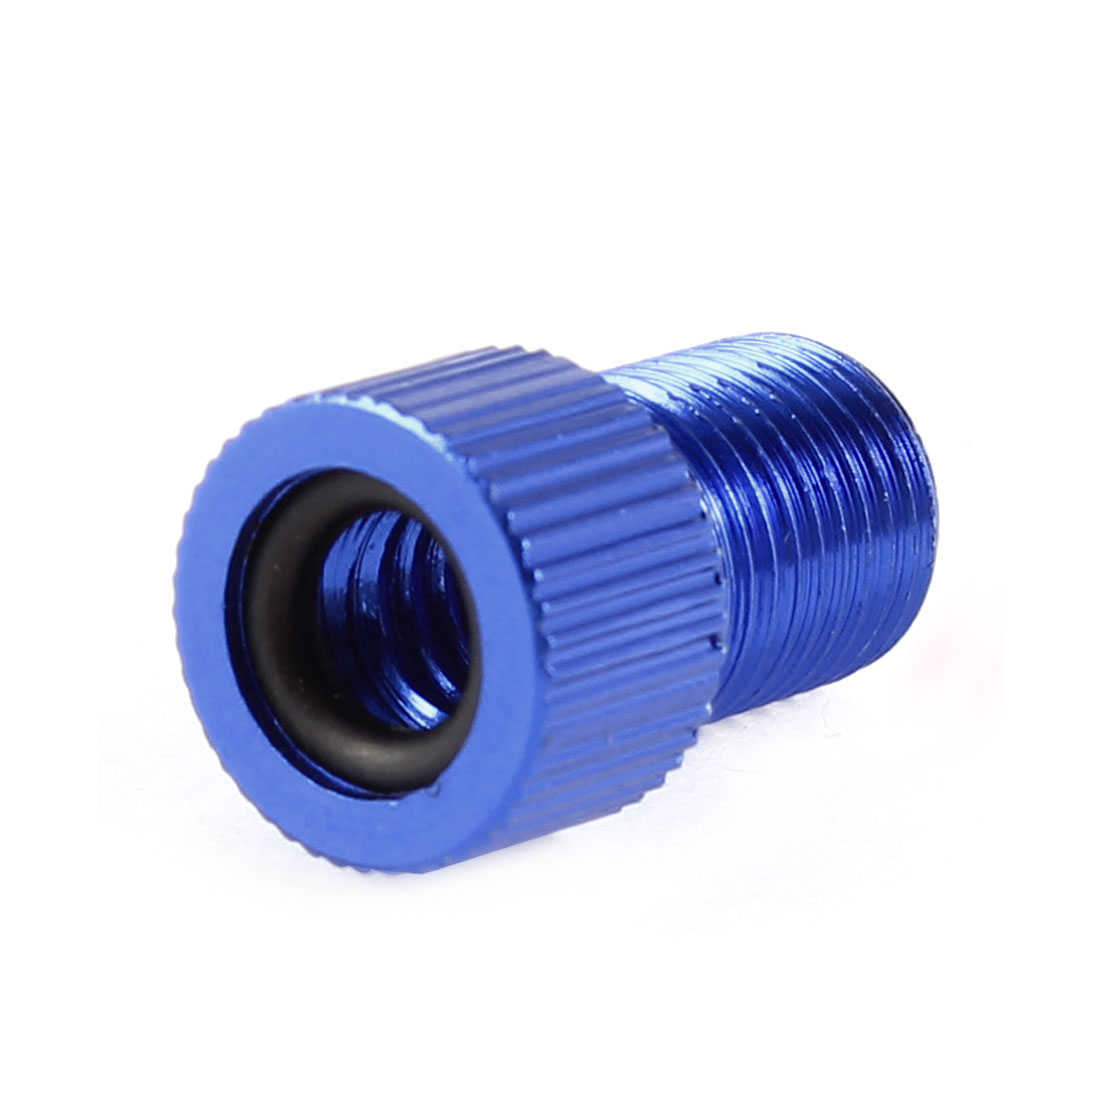 Universal Presta to Schrader Inner Tube Bike Tire Valve Adapter Blue